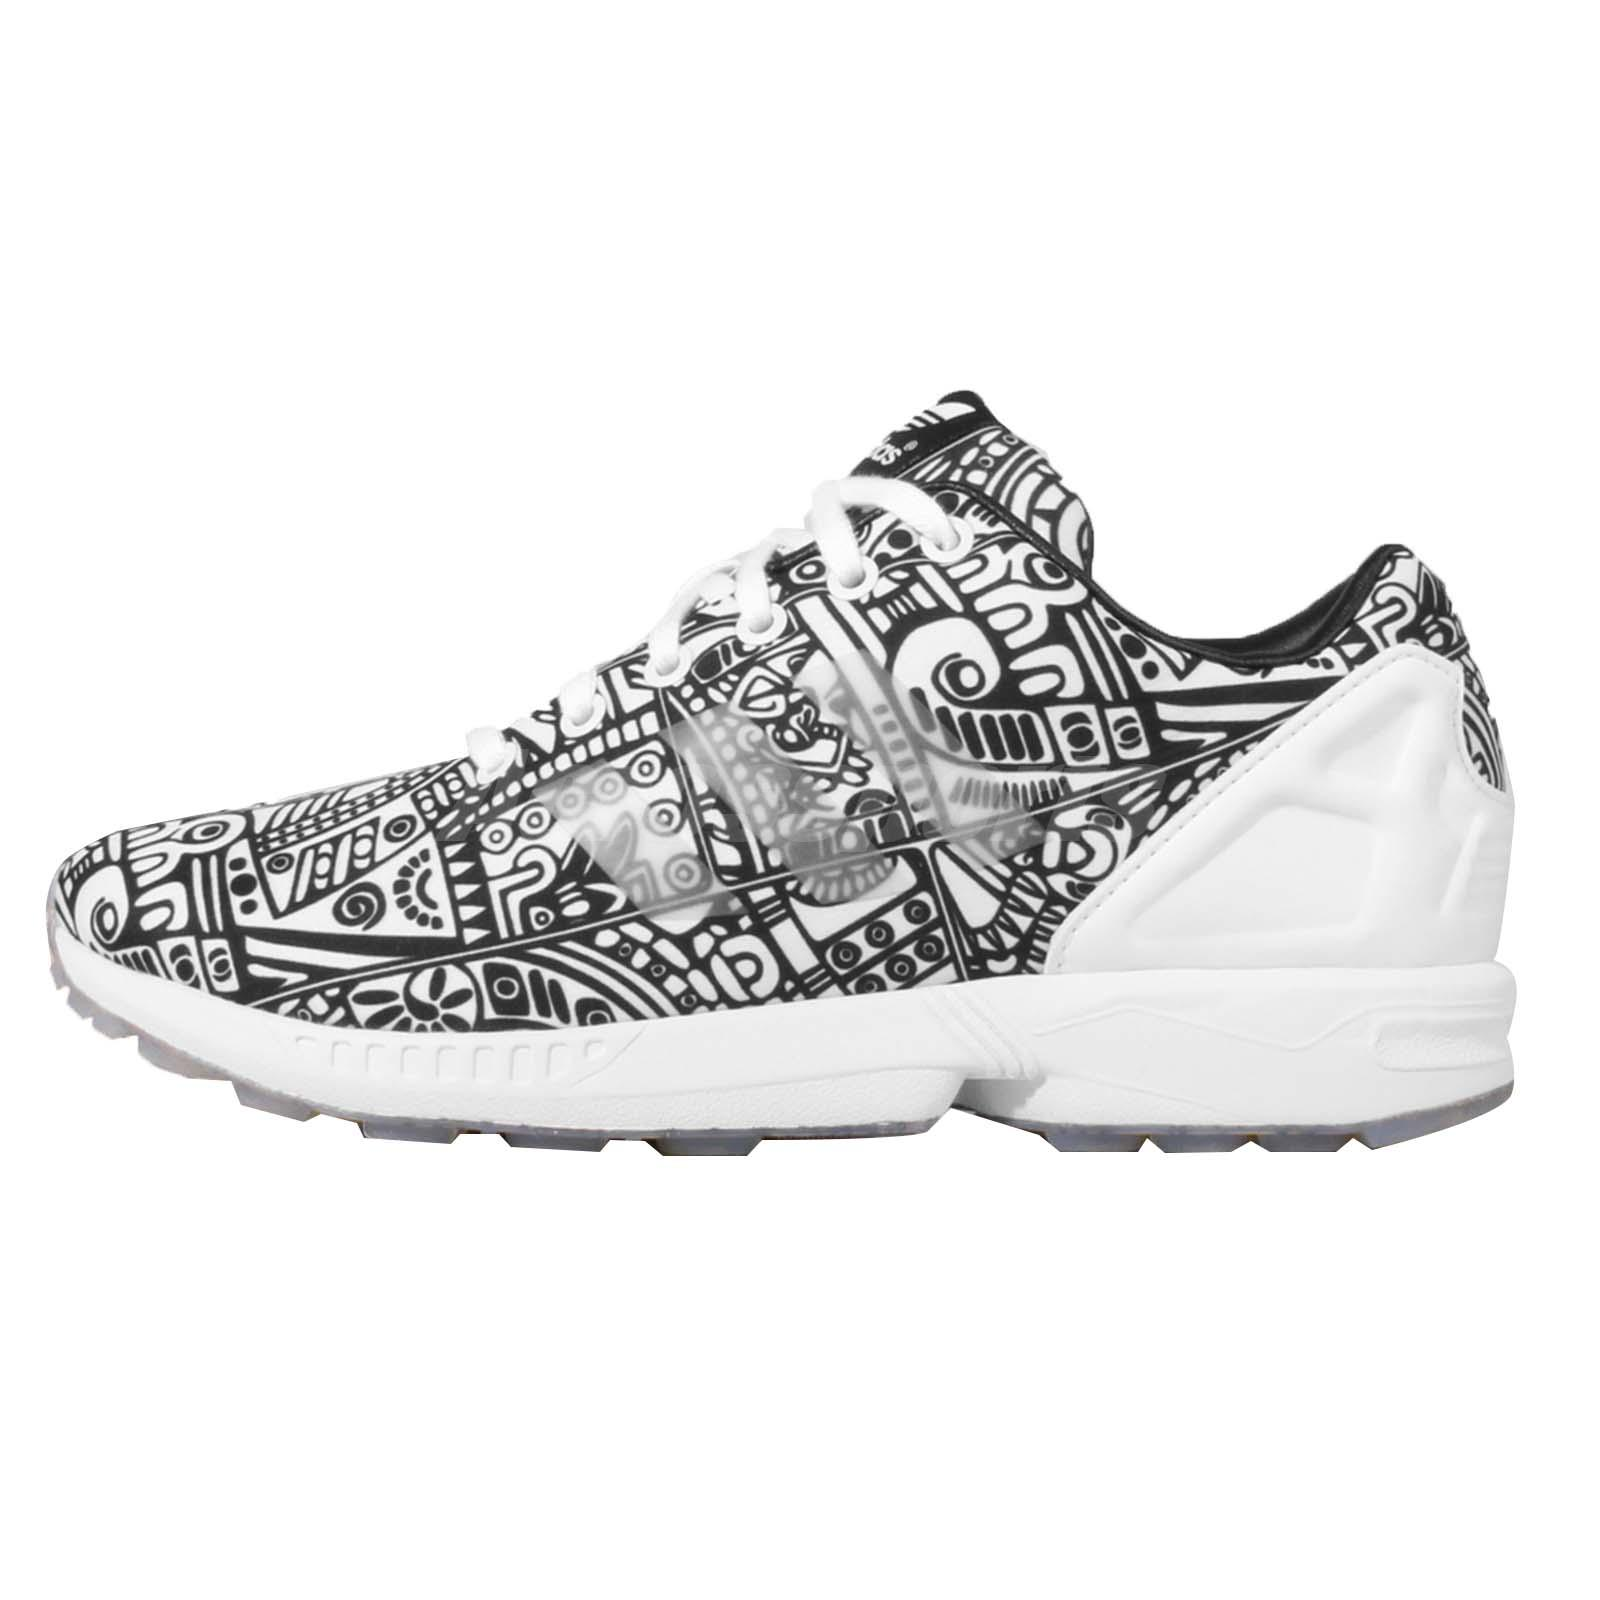 new product e3d7a 49db8 shop cheap adidas zx flux black and white be469 c1646